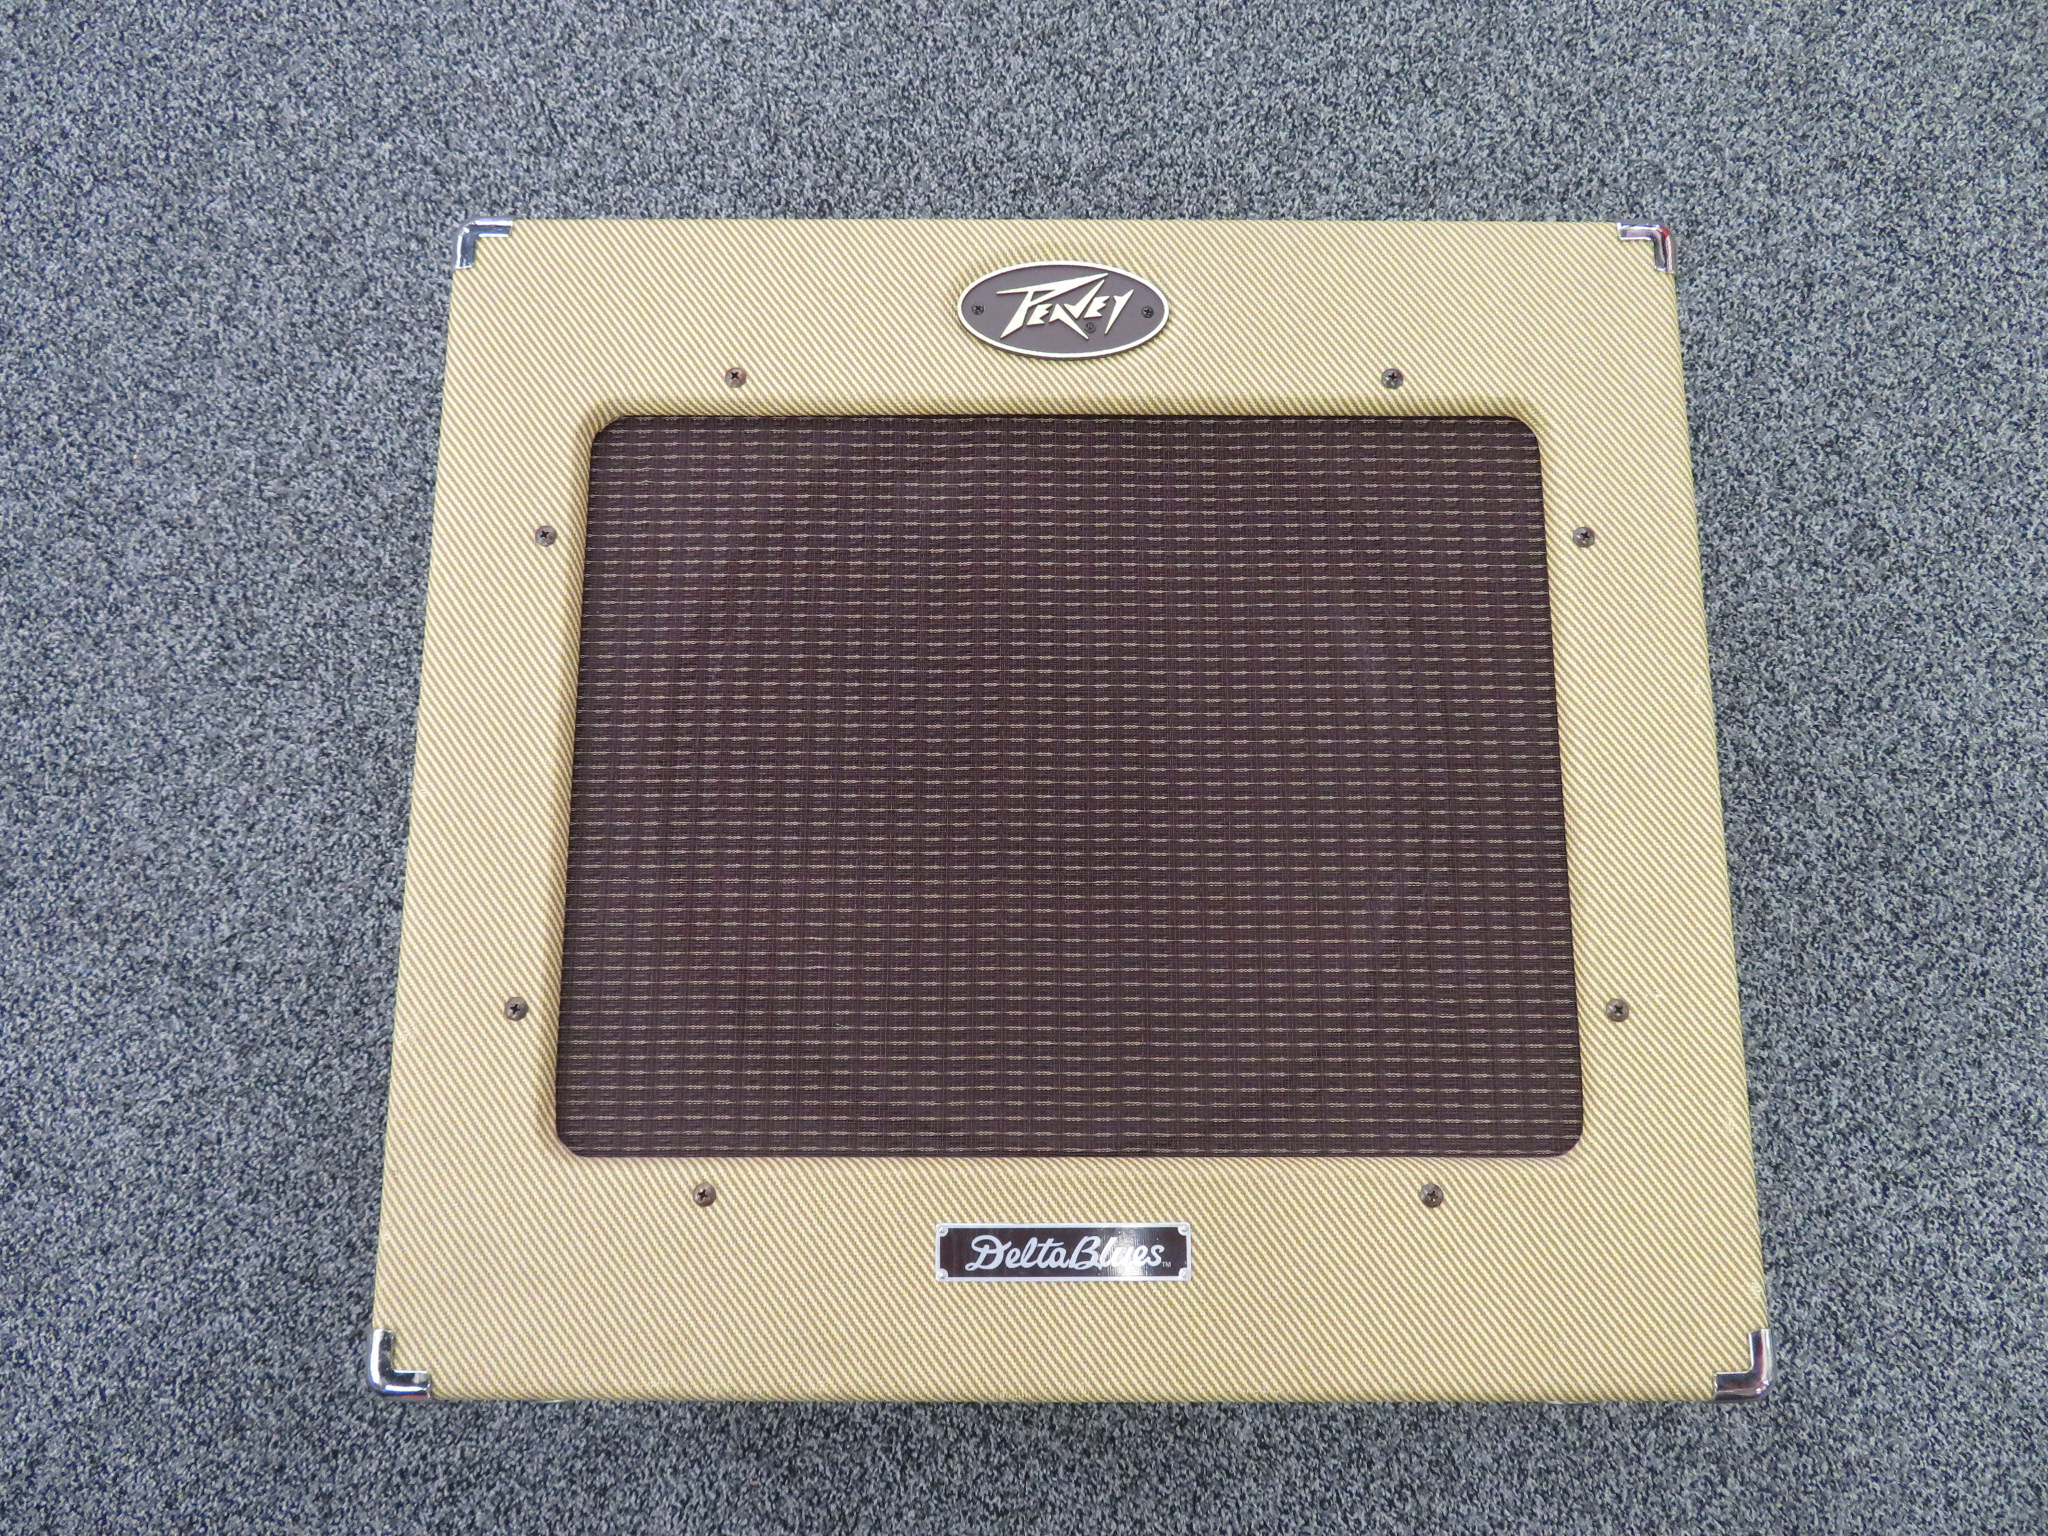 Peavey - Delta Blues 1x15